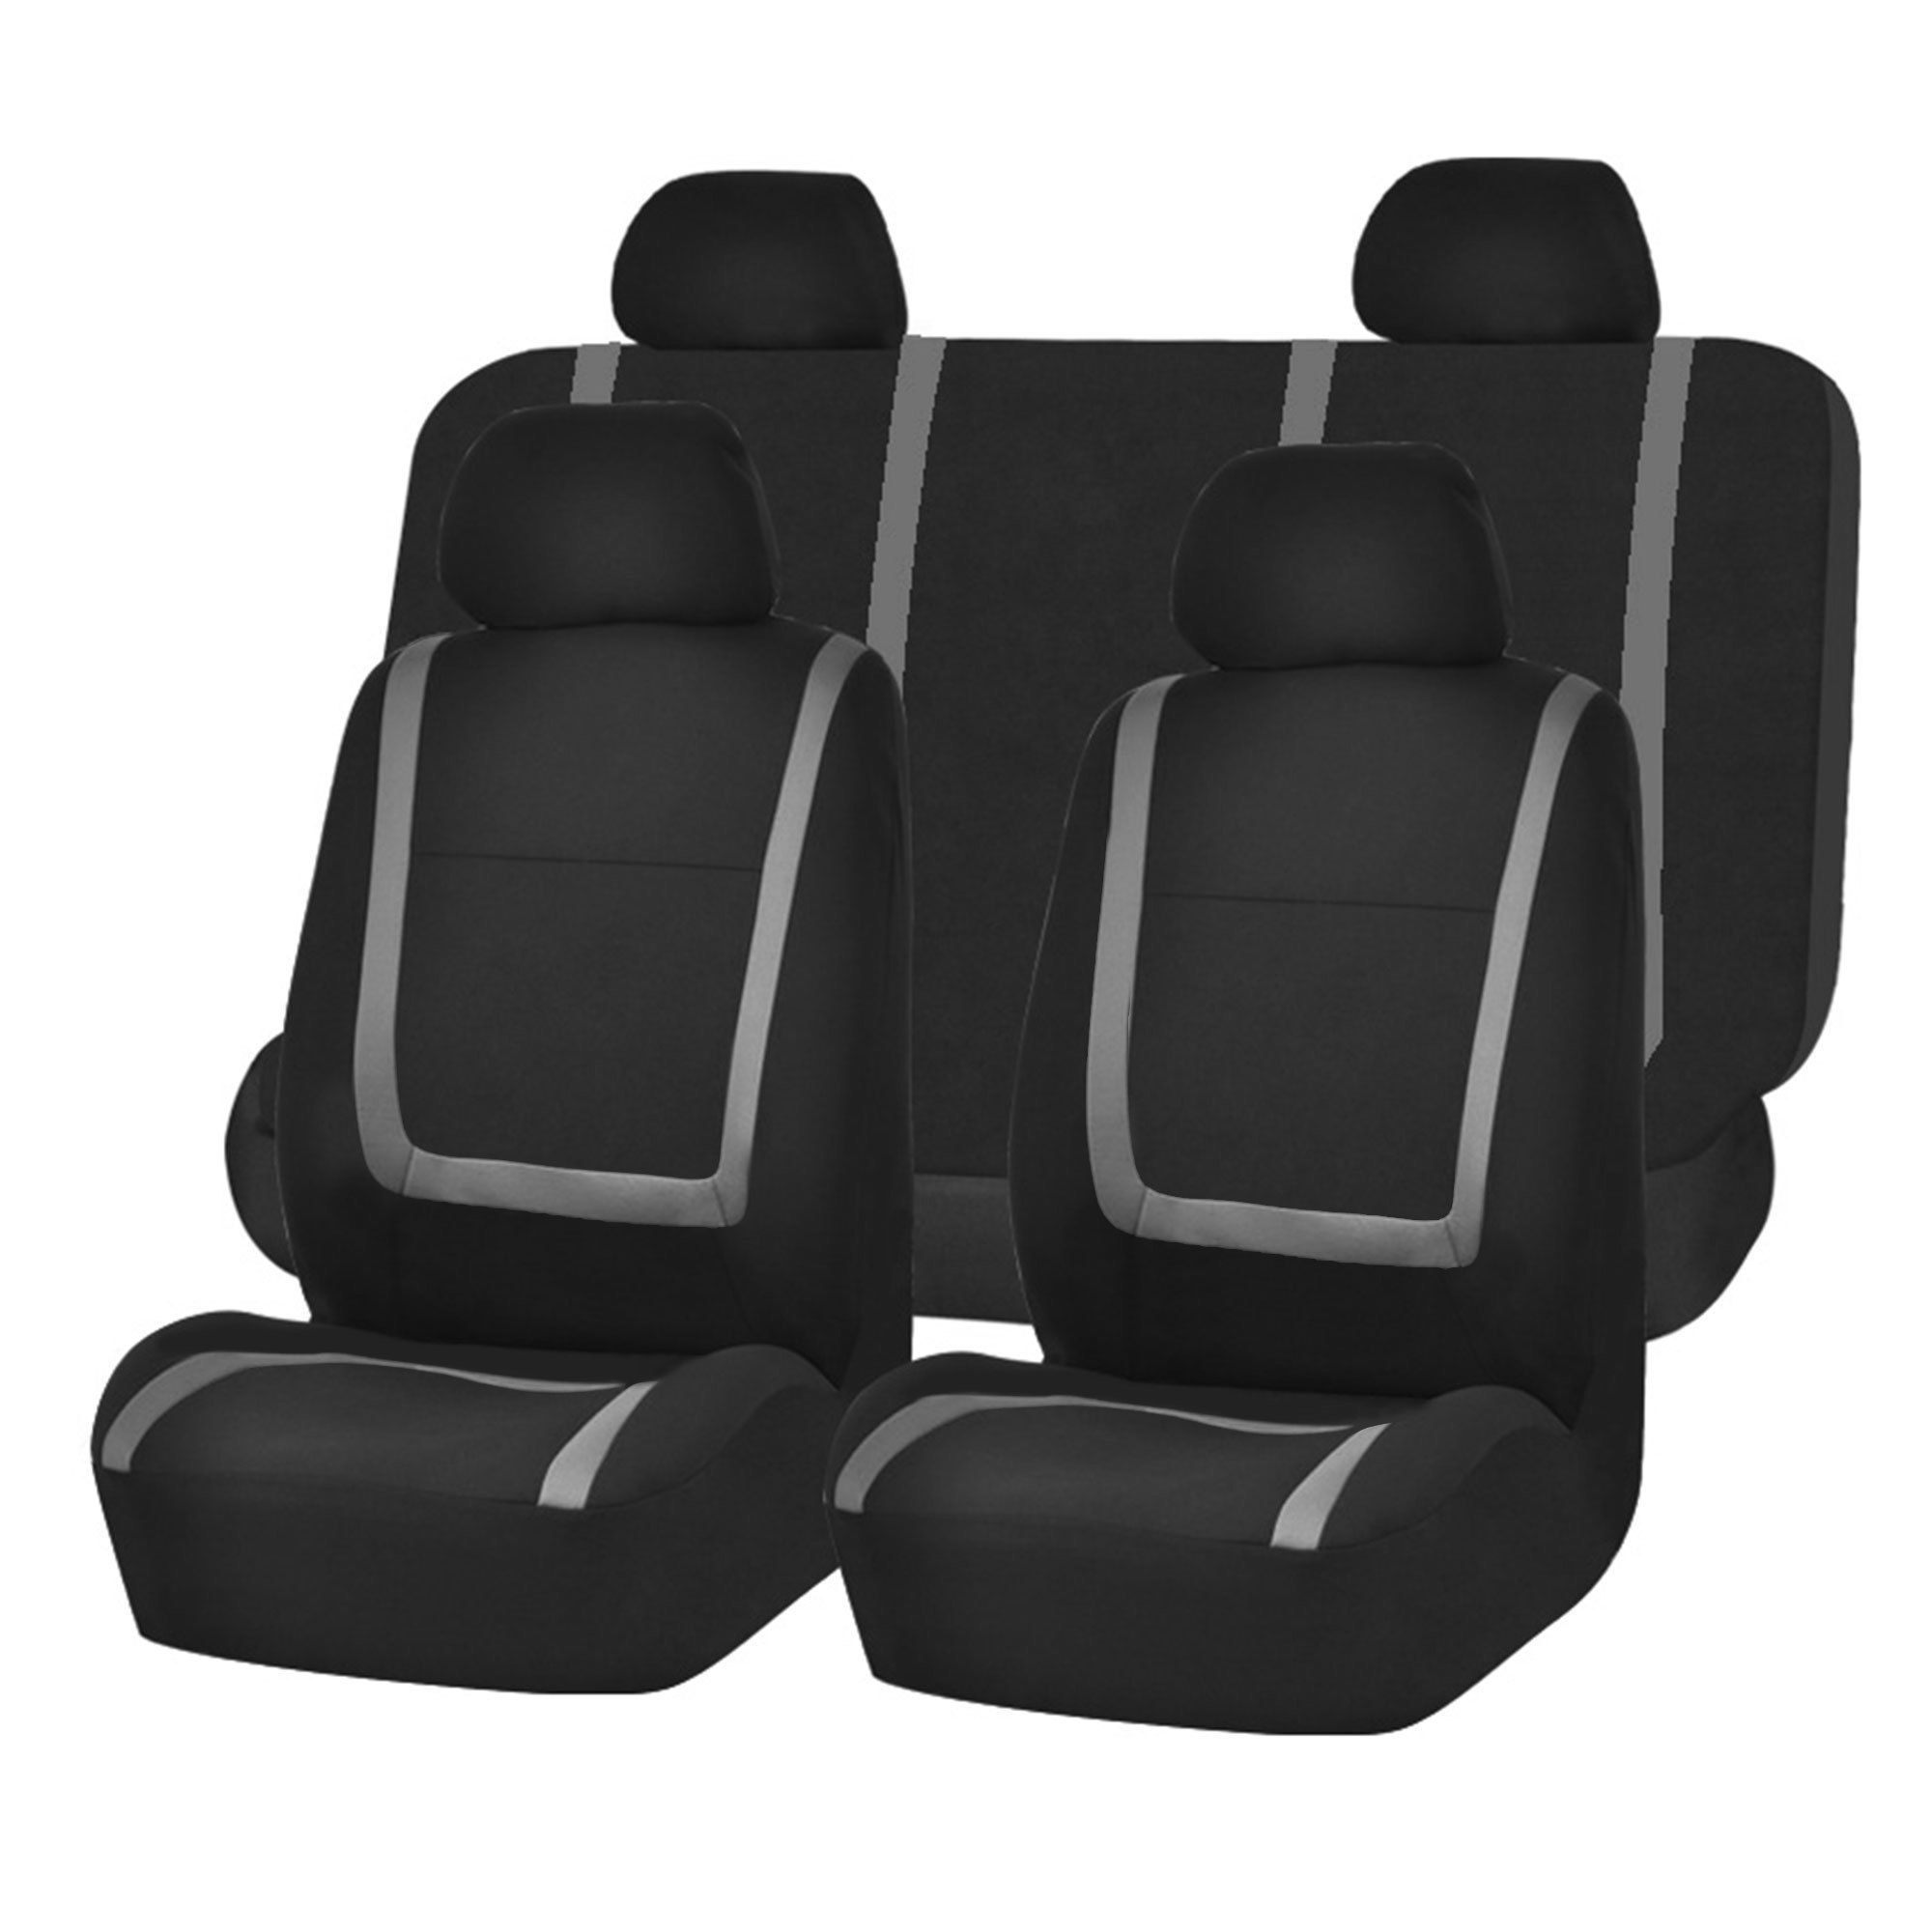 FH Group Grey and Black Unique Flat Cloth Auto Seat Covers (Full Set